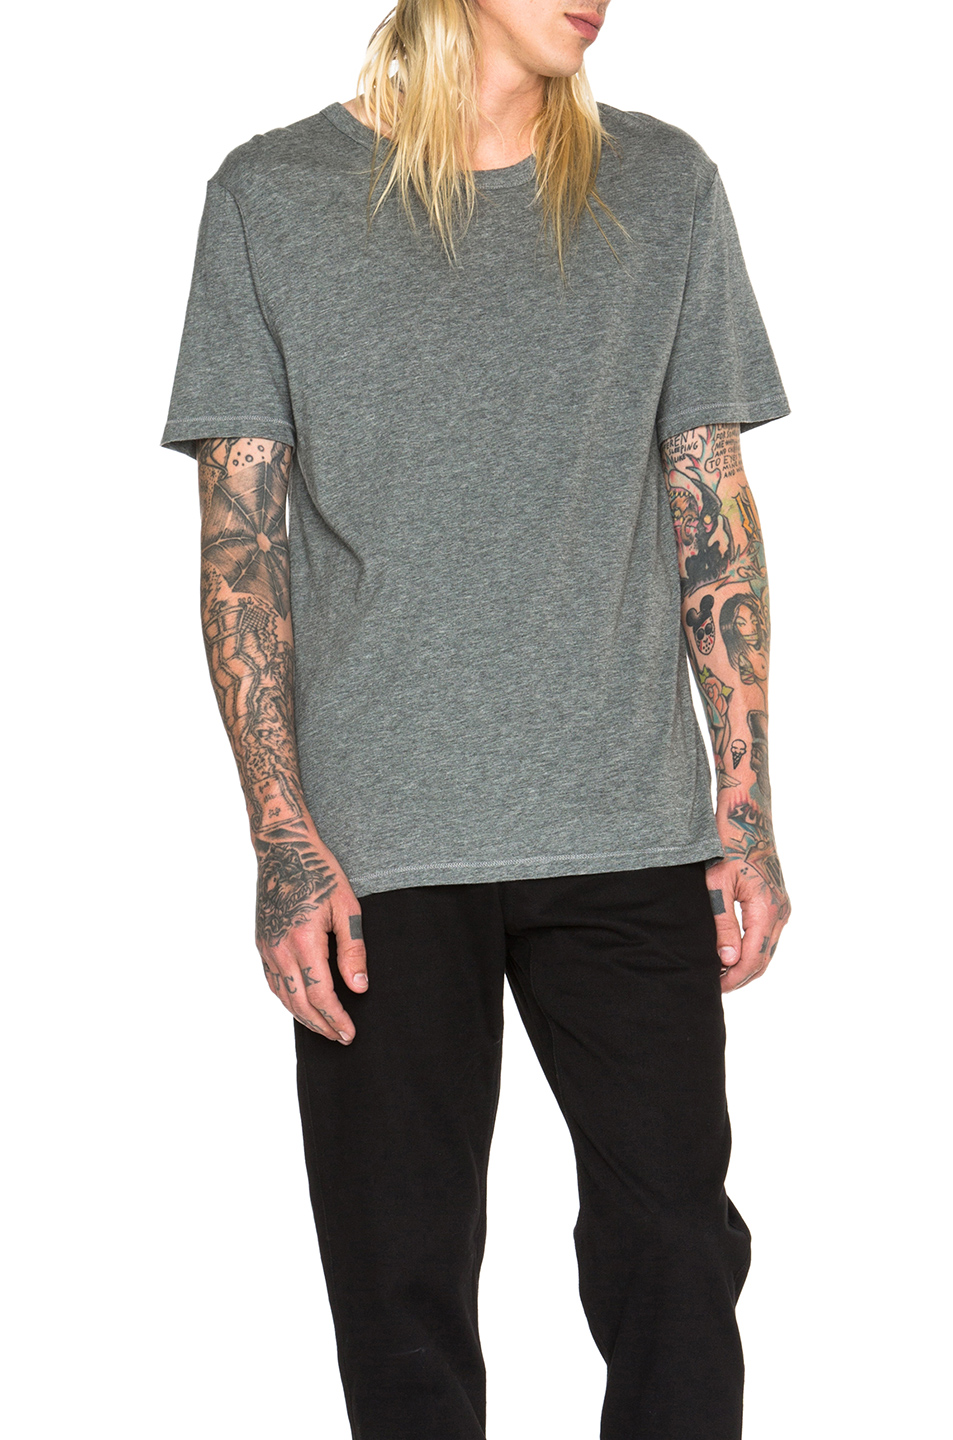 Photo of Alexander Wang Classic Short Sleeve Tee in Gray - shop Alexander Wang menswear